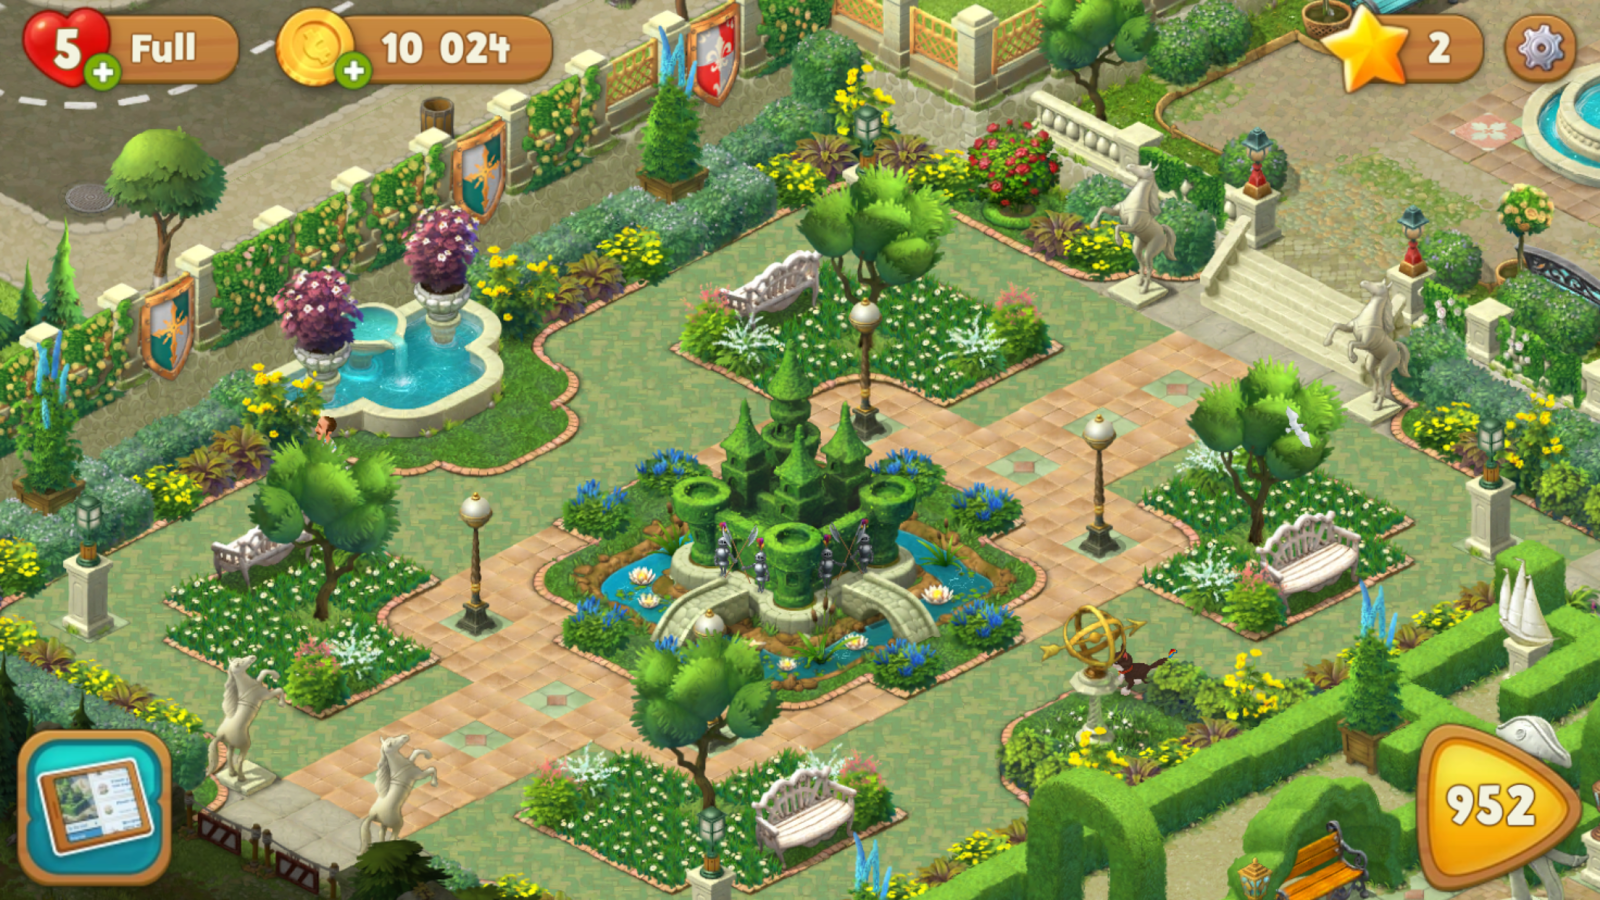 Gardenscapes - New Acres Screenshot 5